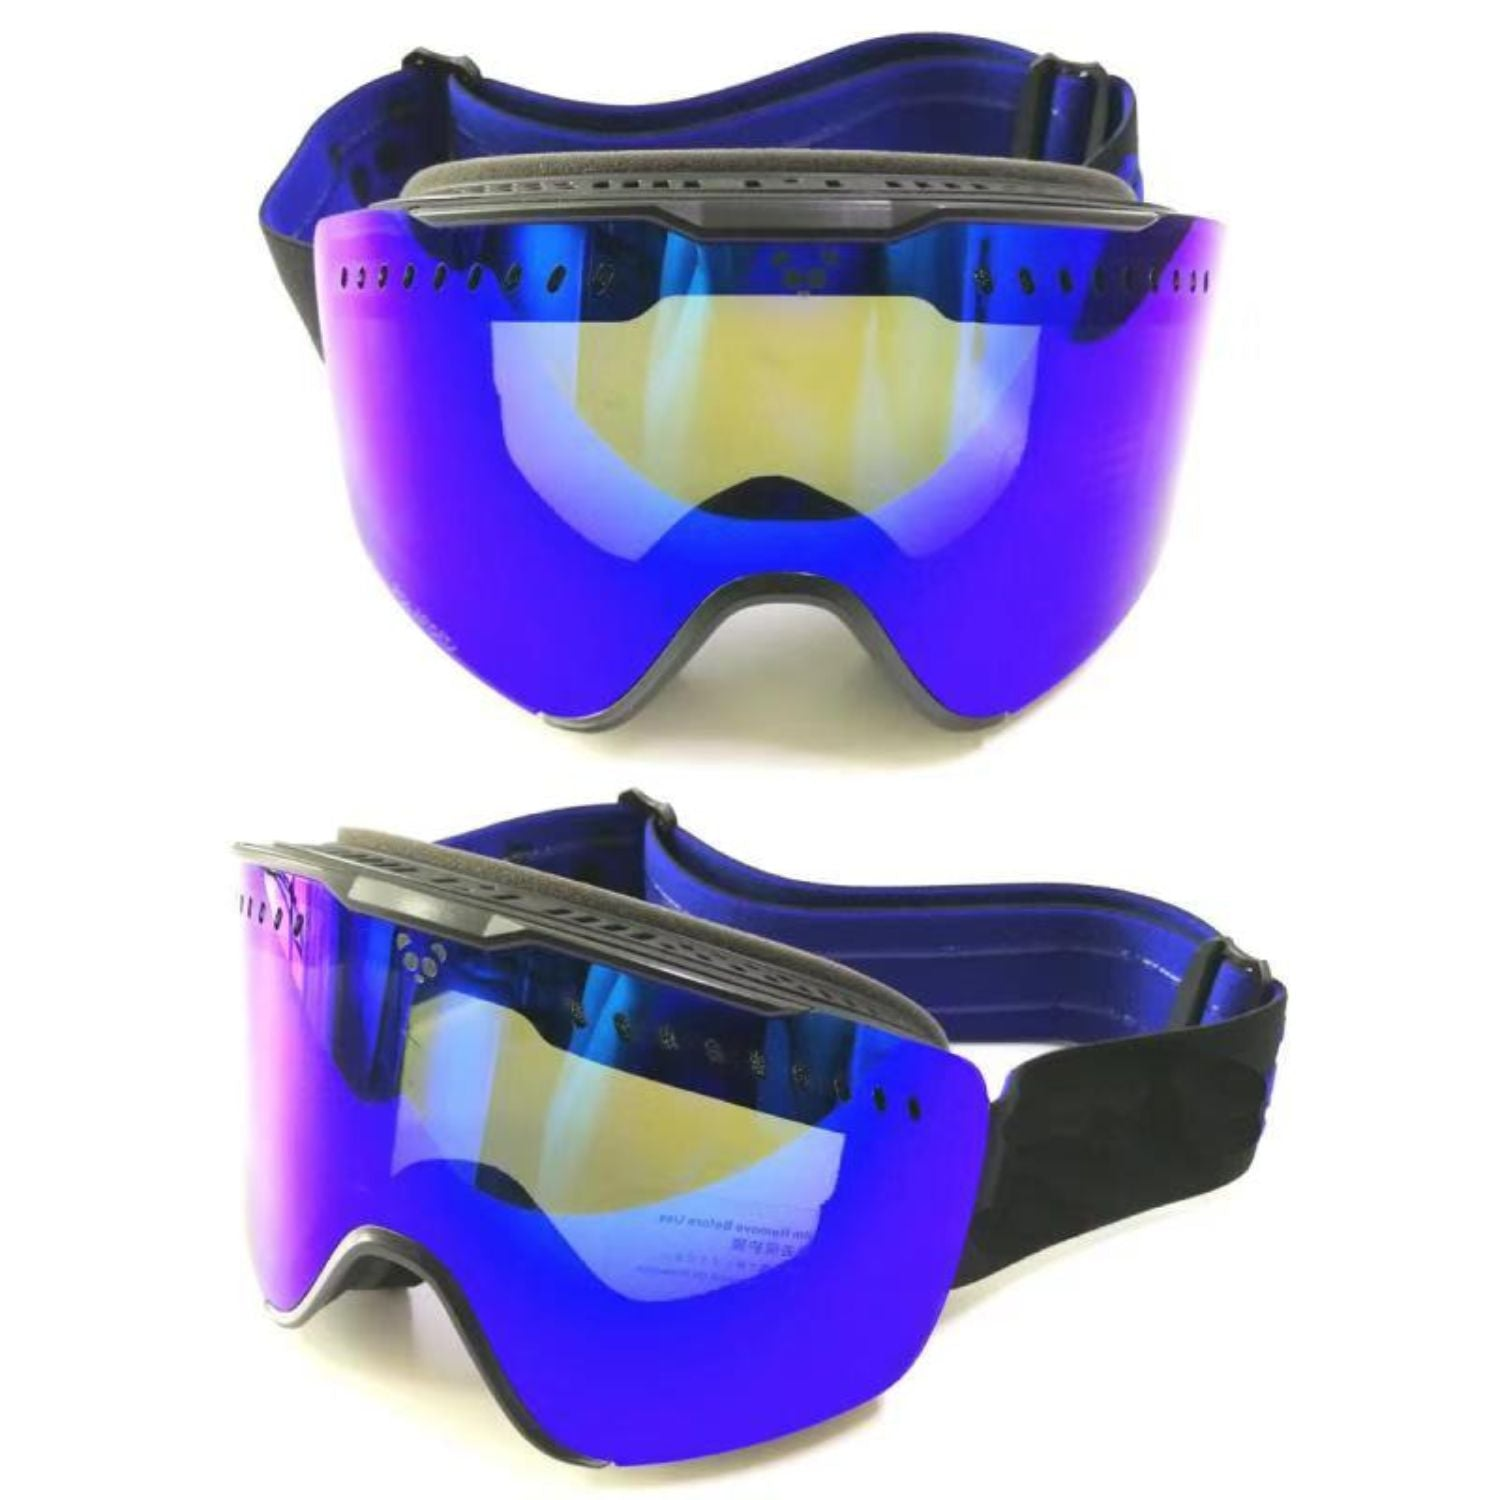 SG08 - Outdoor Snowboard Ski UV Protection Goggles - Iris Fashion Inc. | Wholesale Sunglasses and Glasses